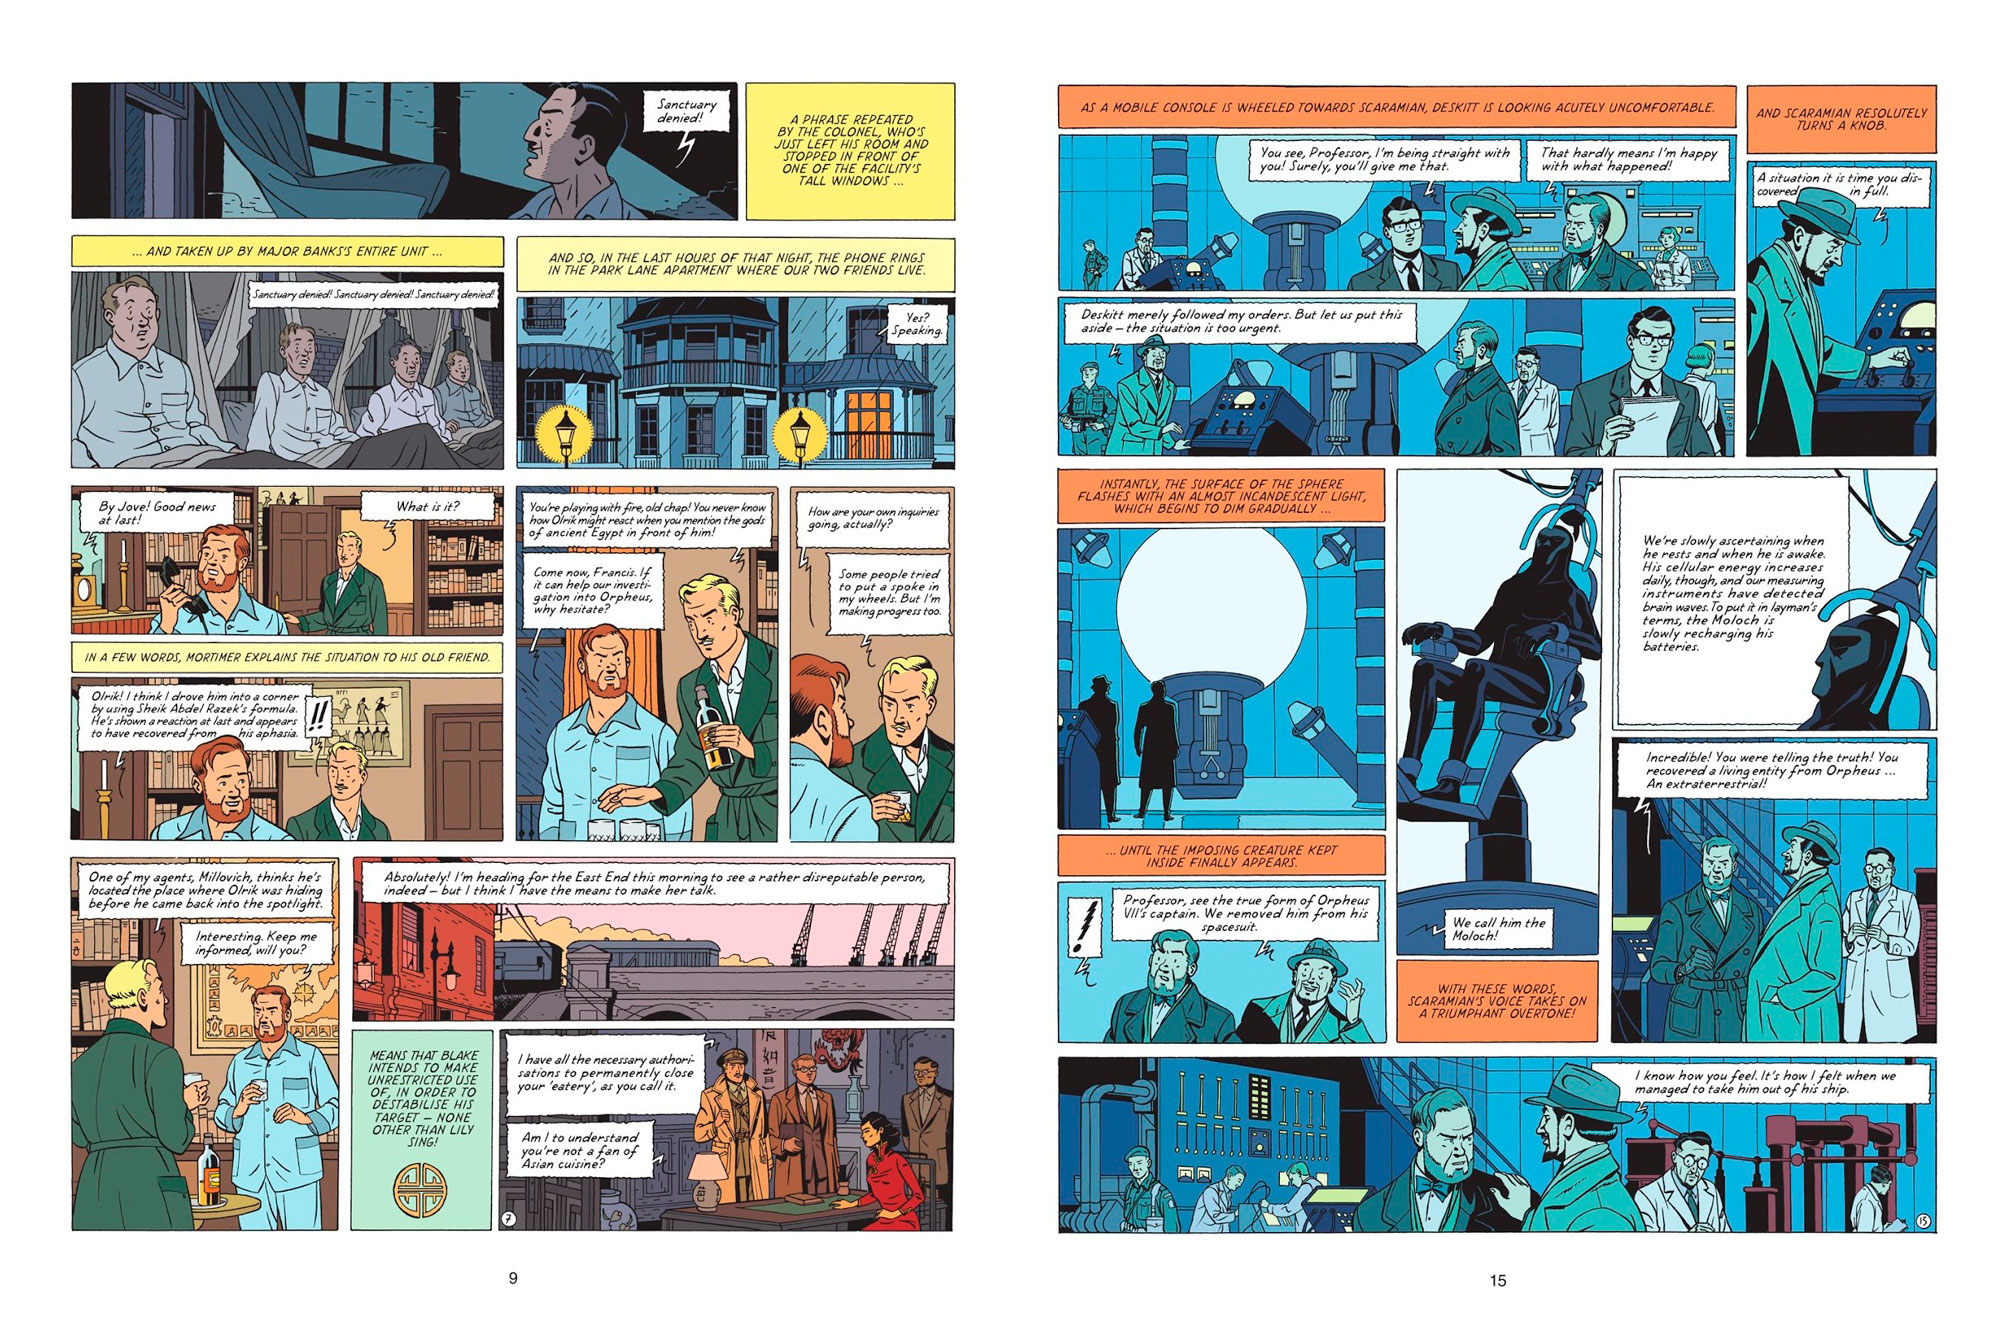 Blake & Mortimer The Call of theMoloch review